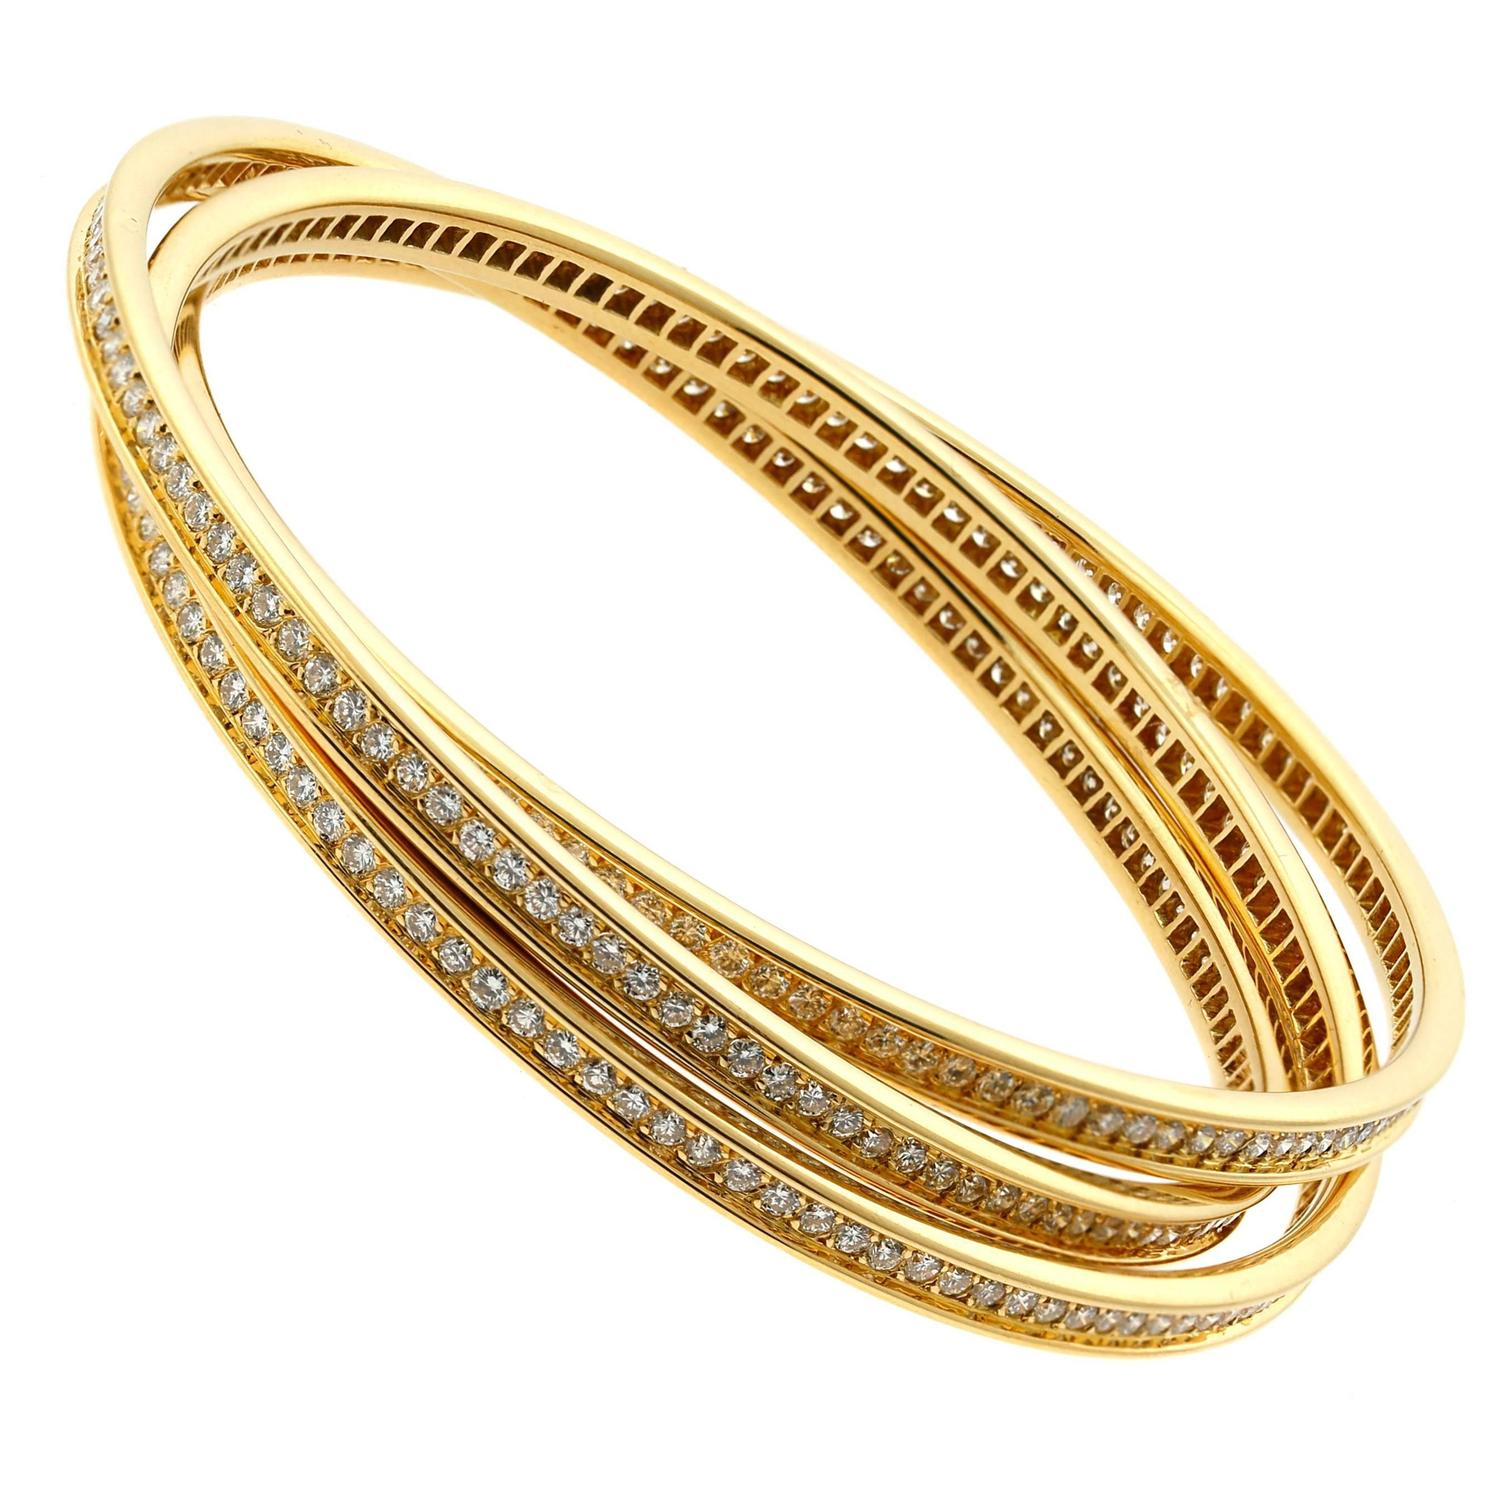 popular set online bangles cut borders buy without goldsilver bangle piece stamped gold up of close jewelry at com bracelet